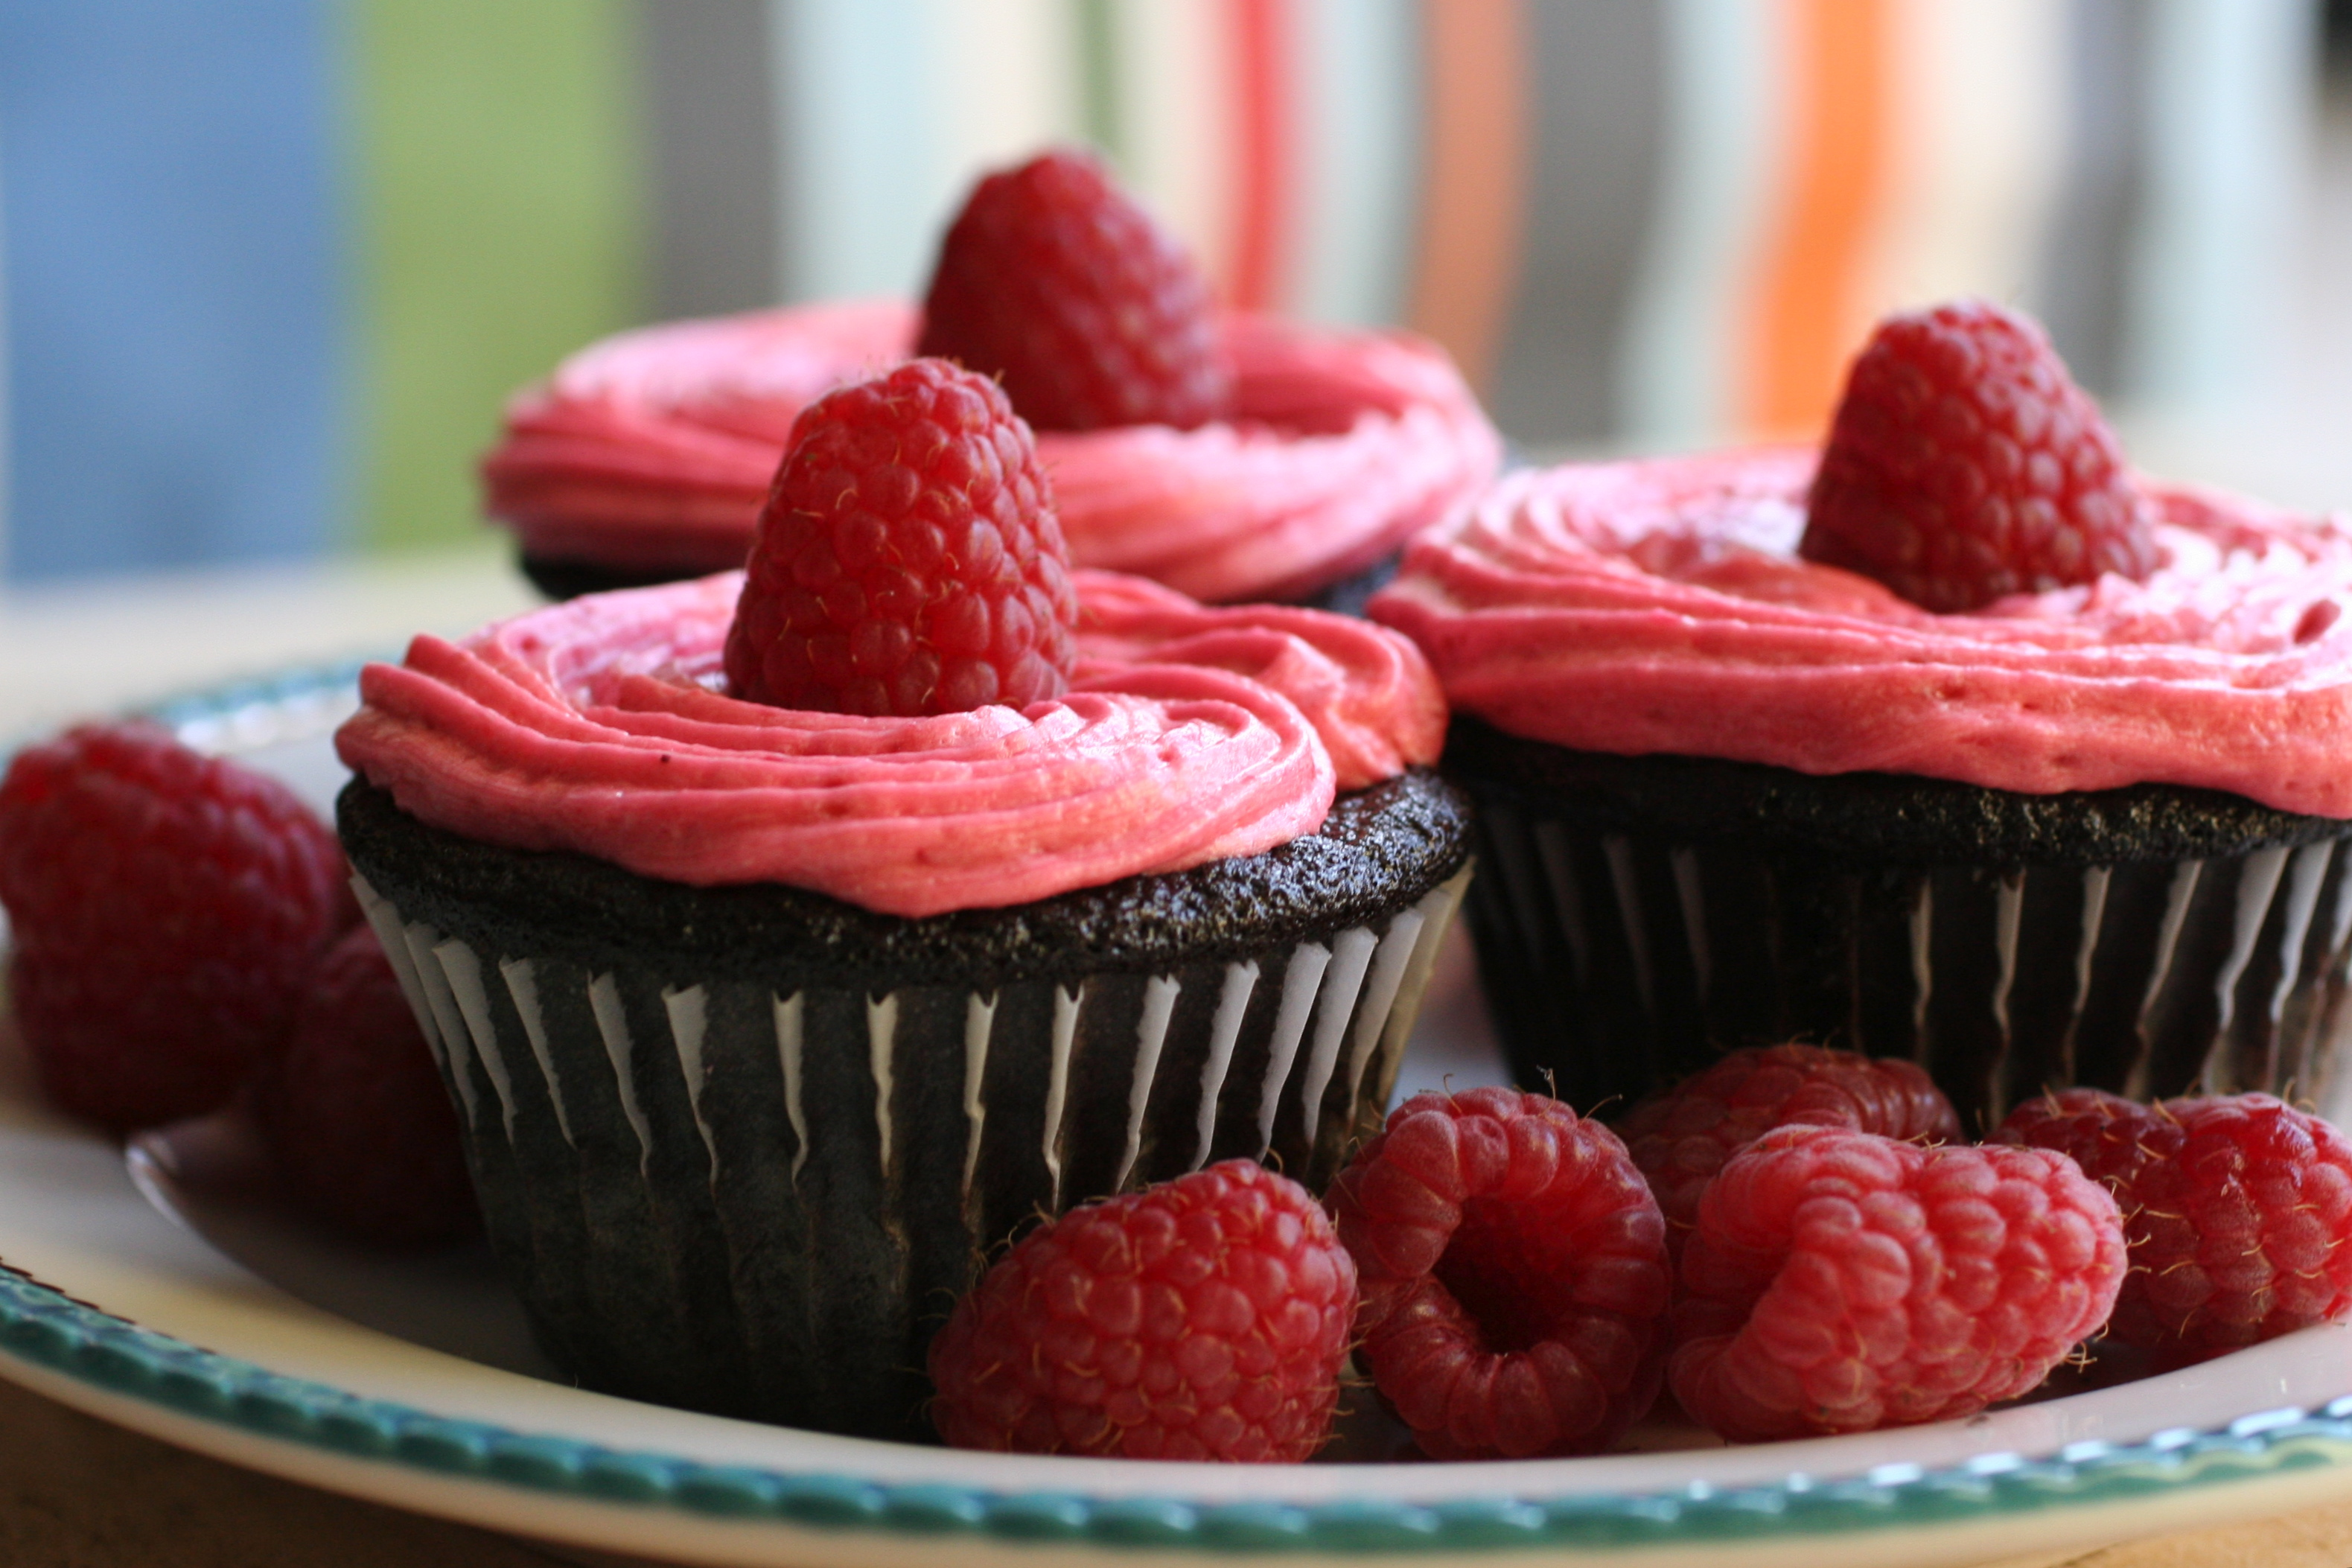 http://upload.wikimedia.org/wikipedia/commons/d/da/Chocolate_Cupcakes_with_Raspberry_Buttercream.jpg